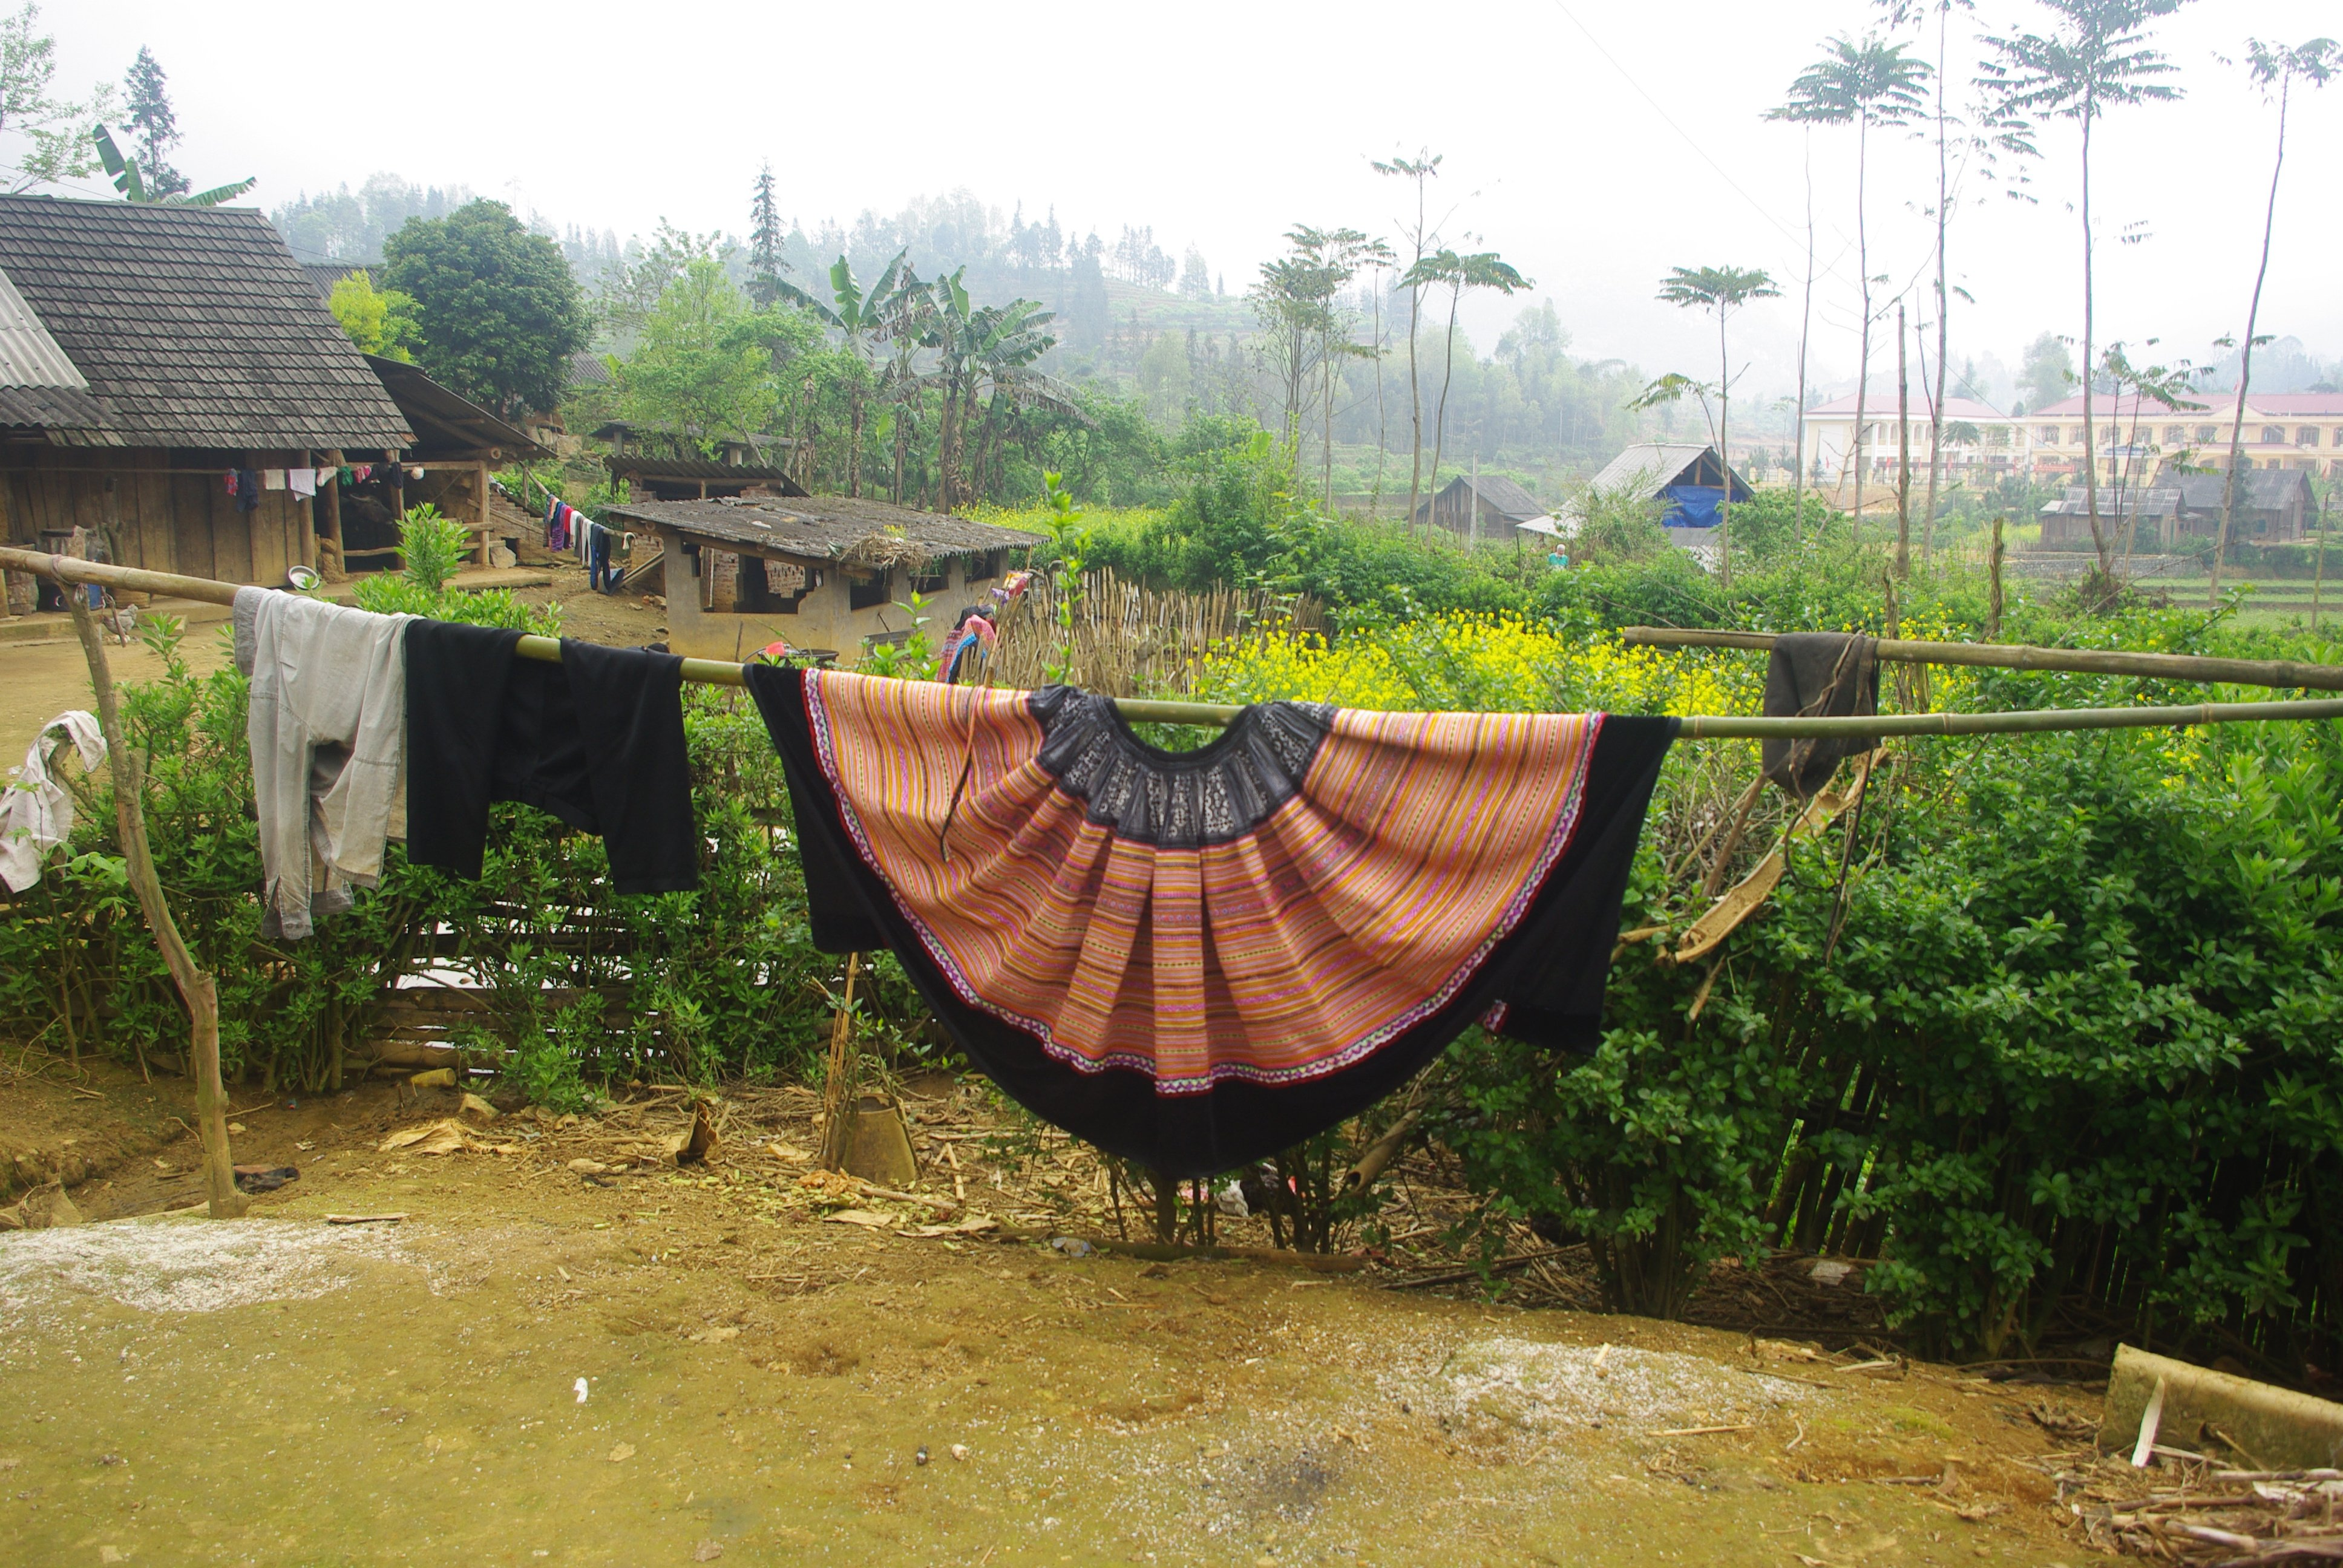 Flower Hmong skirt hanging out to dry